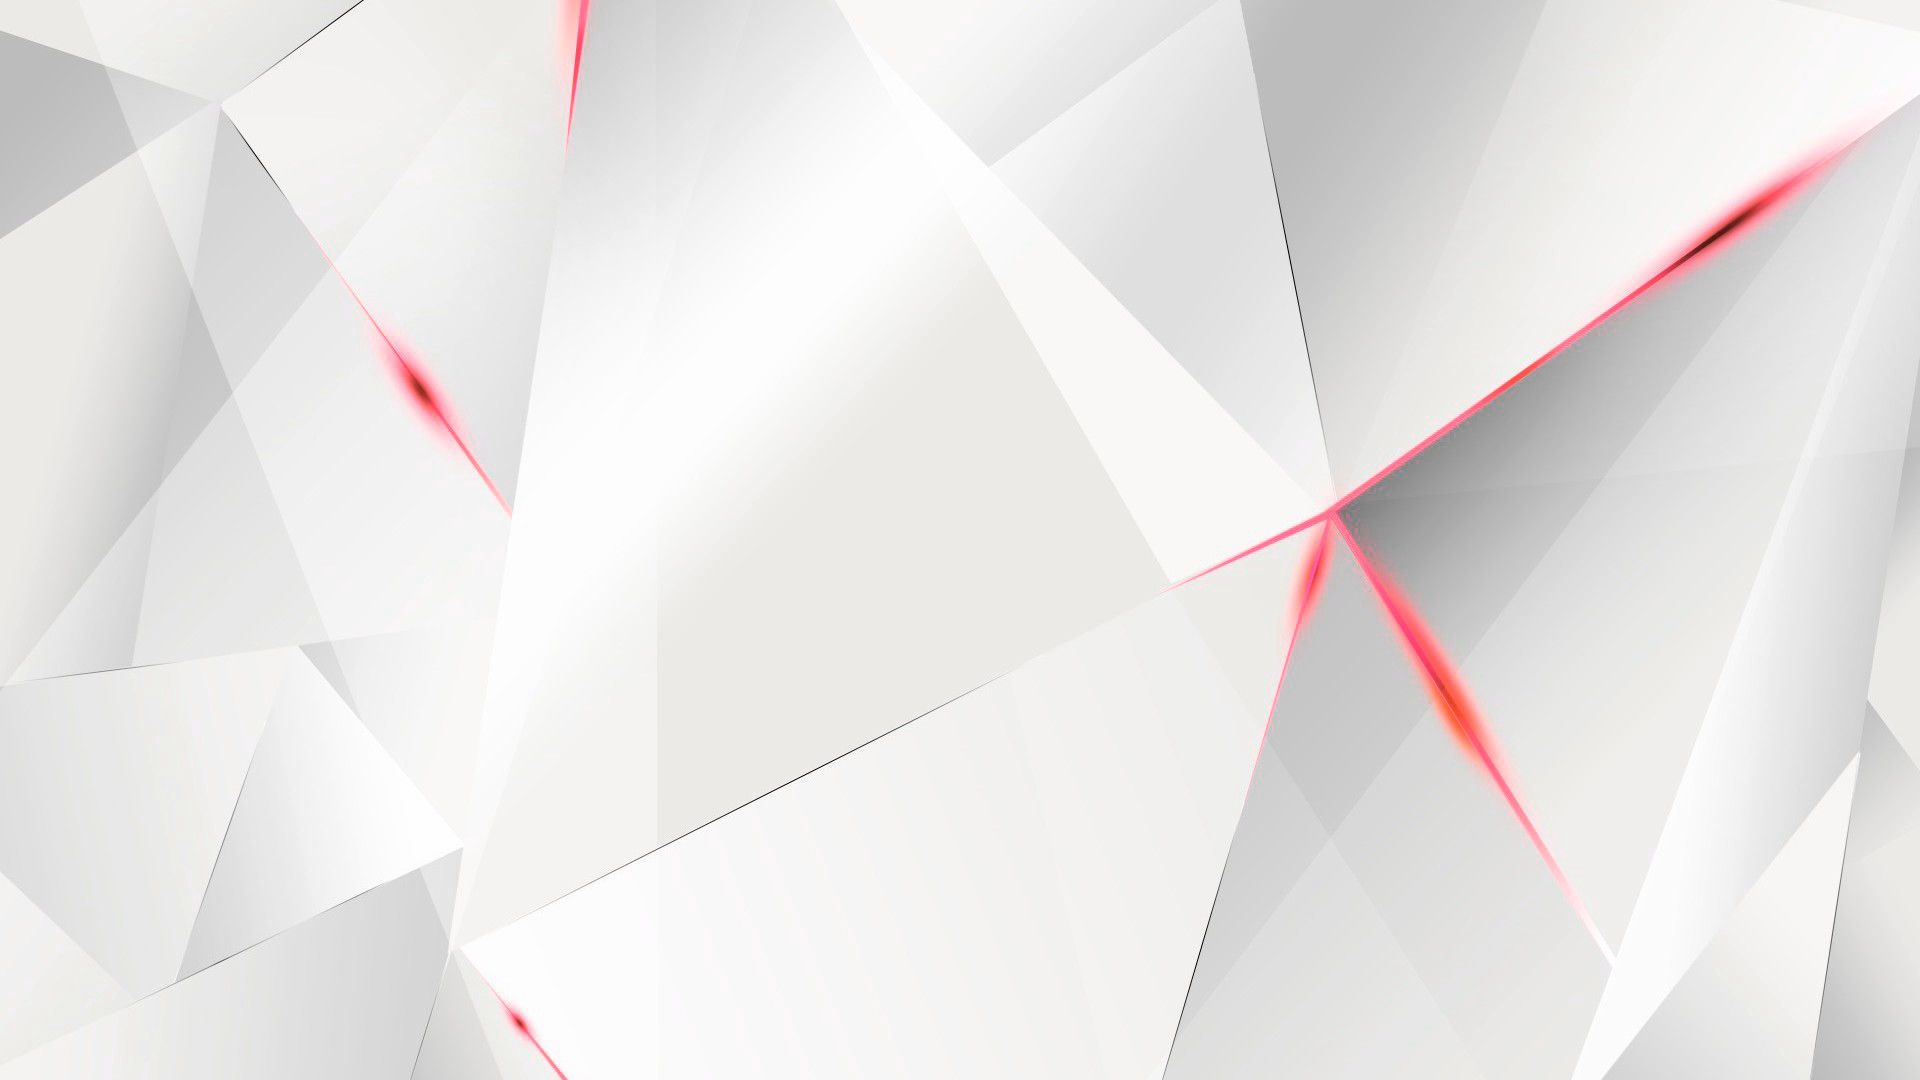 Res 1920x1080 White Abstract Wallpaper Picture Red And White Wallpaper Abstract Wallpaper Wallpaper Pictures